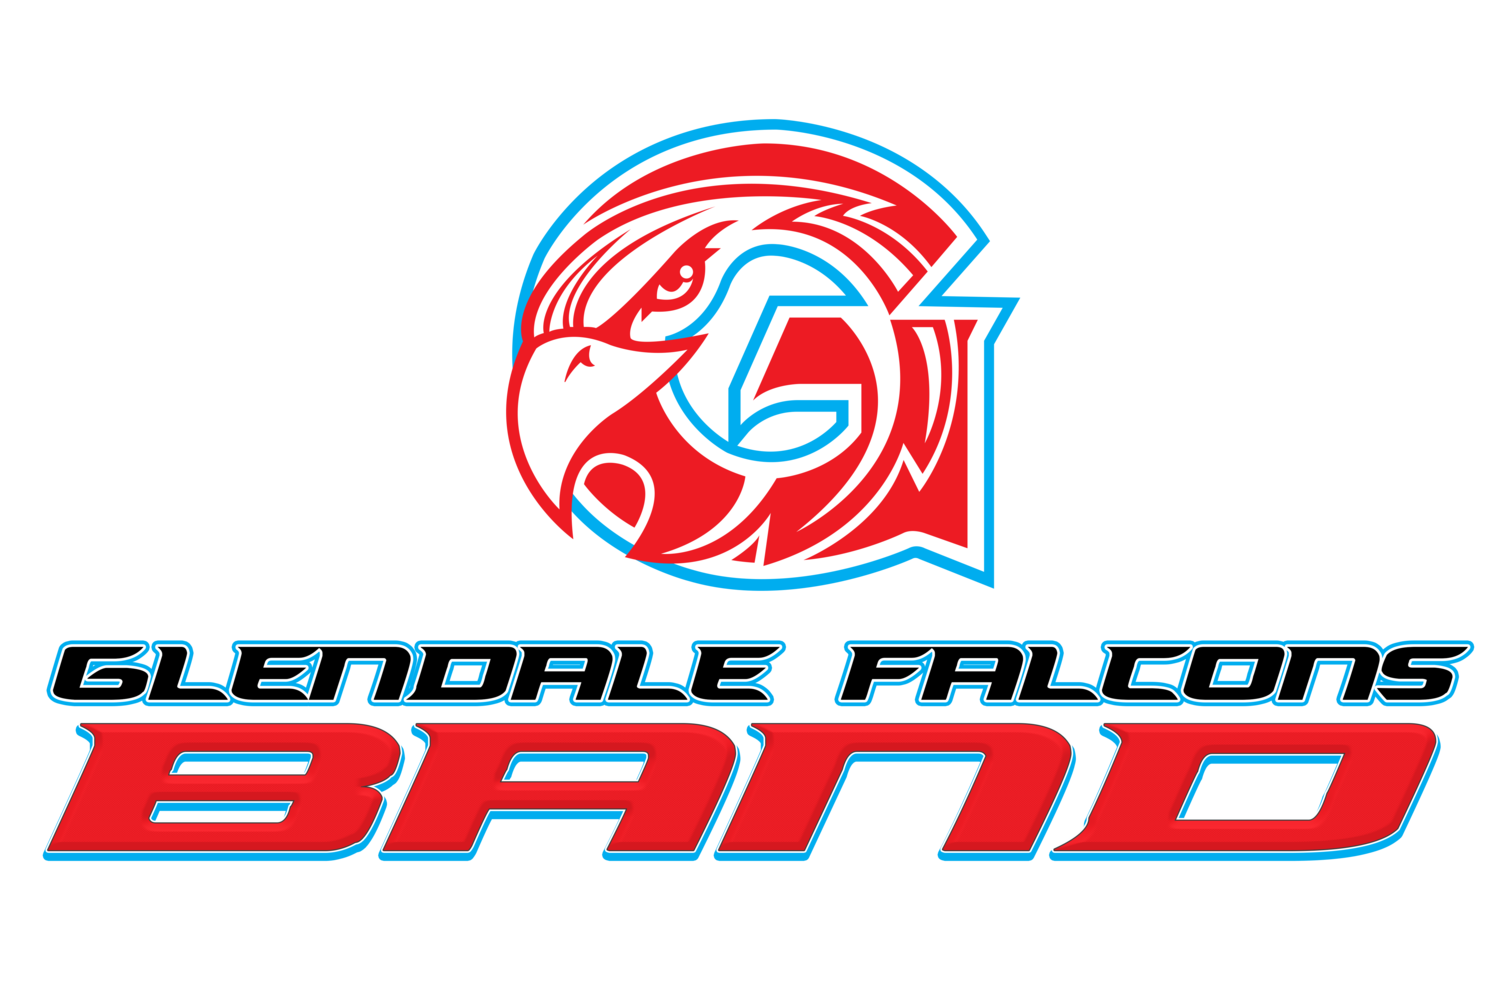 Glendale Falcon Bands